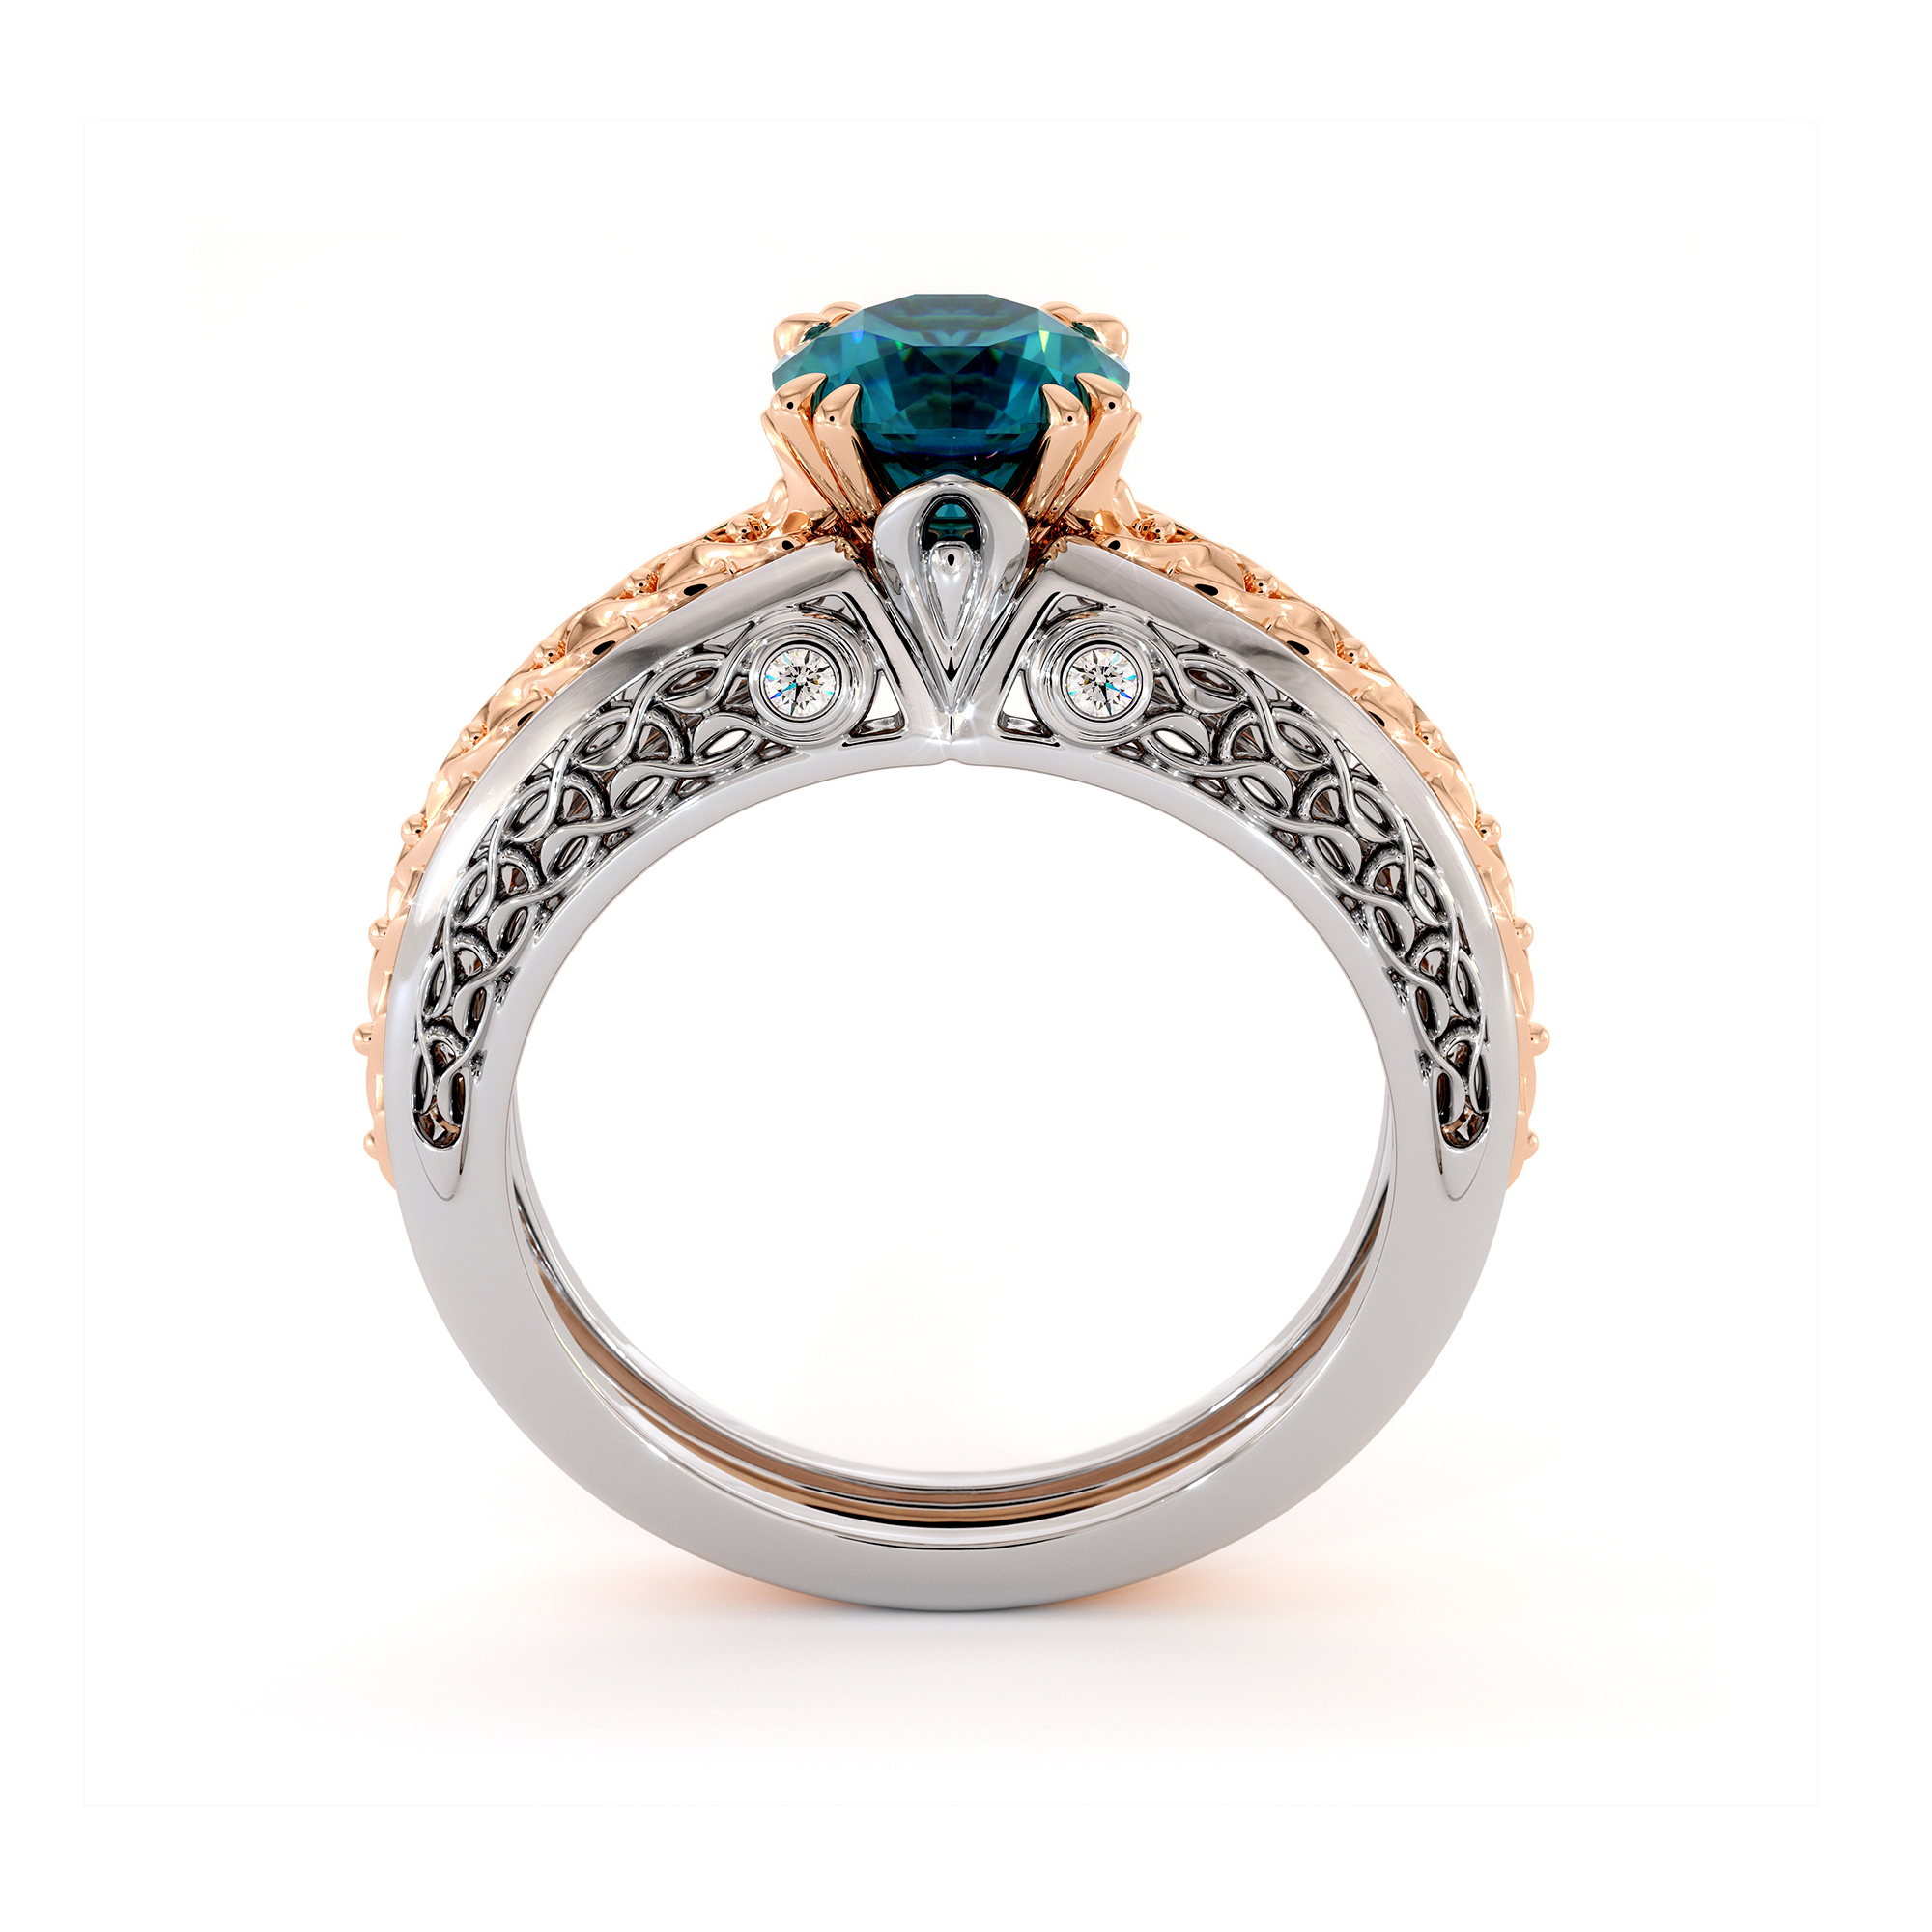 Princely Blue Diamond White And Rose Gold Engagement Ring